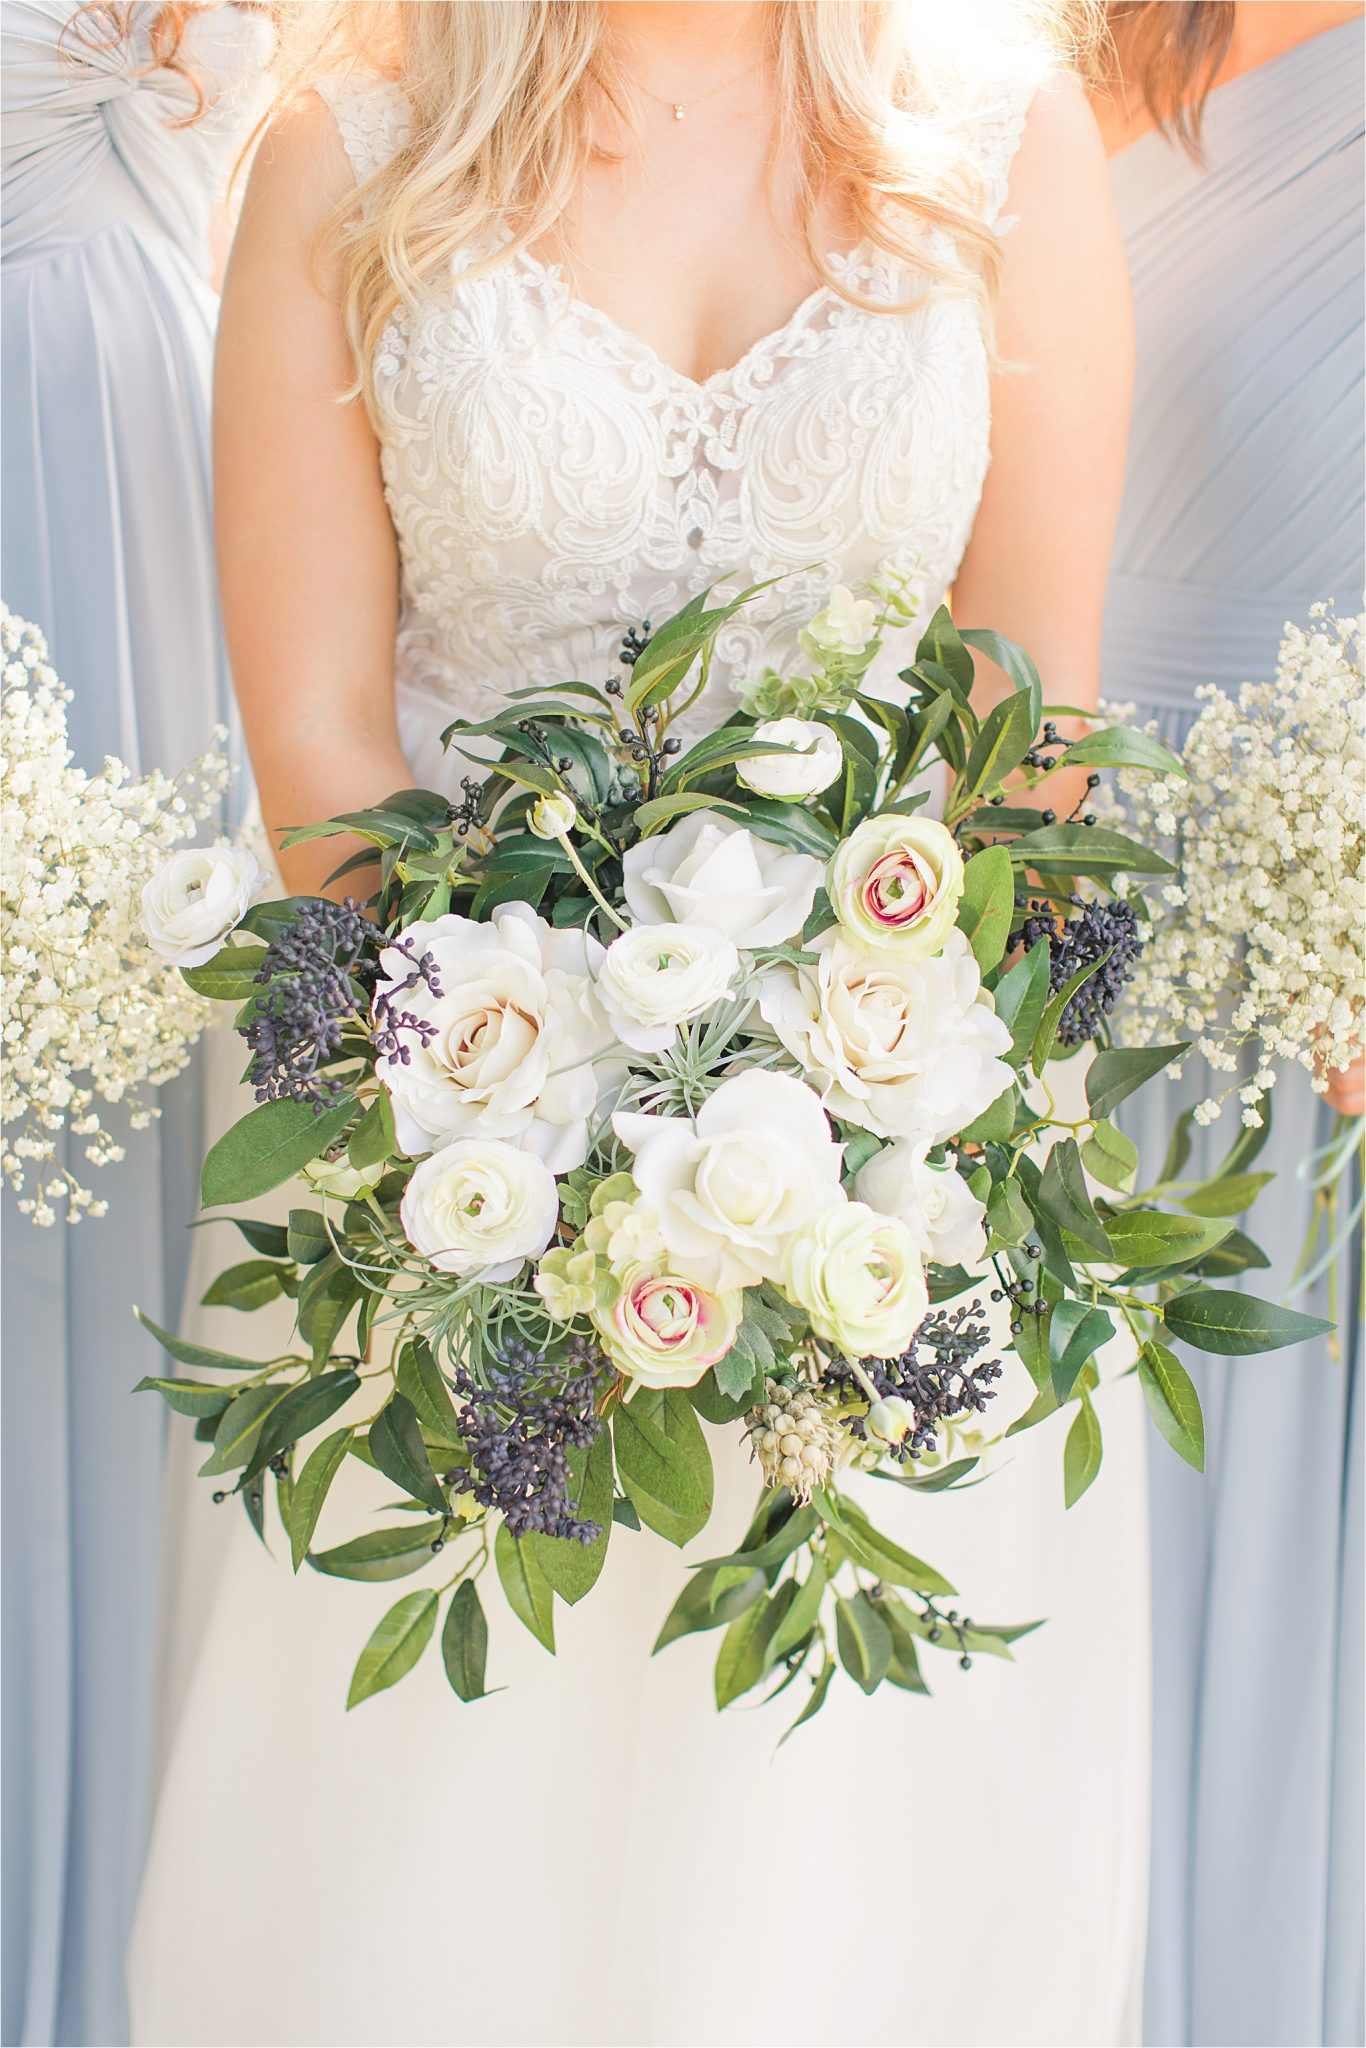 bridal-bouquets-raspberry-periwinkle-blue-white-roses-lace-wedding-dress